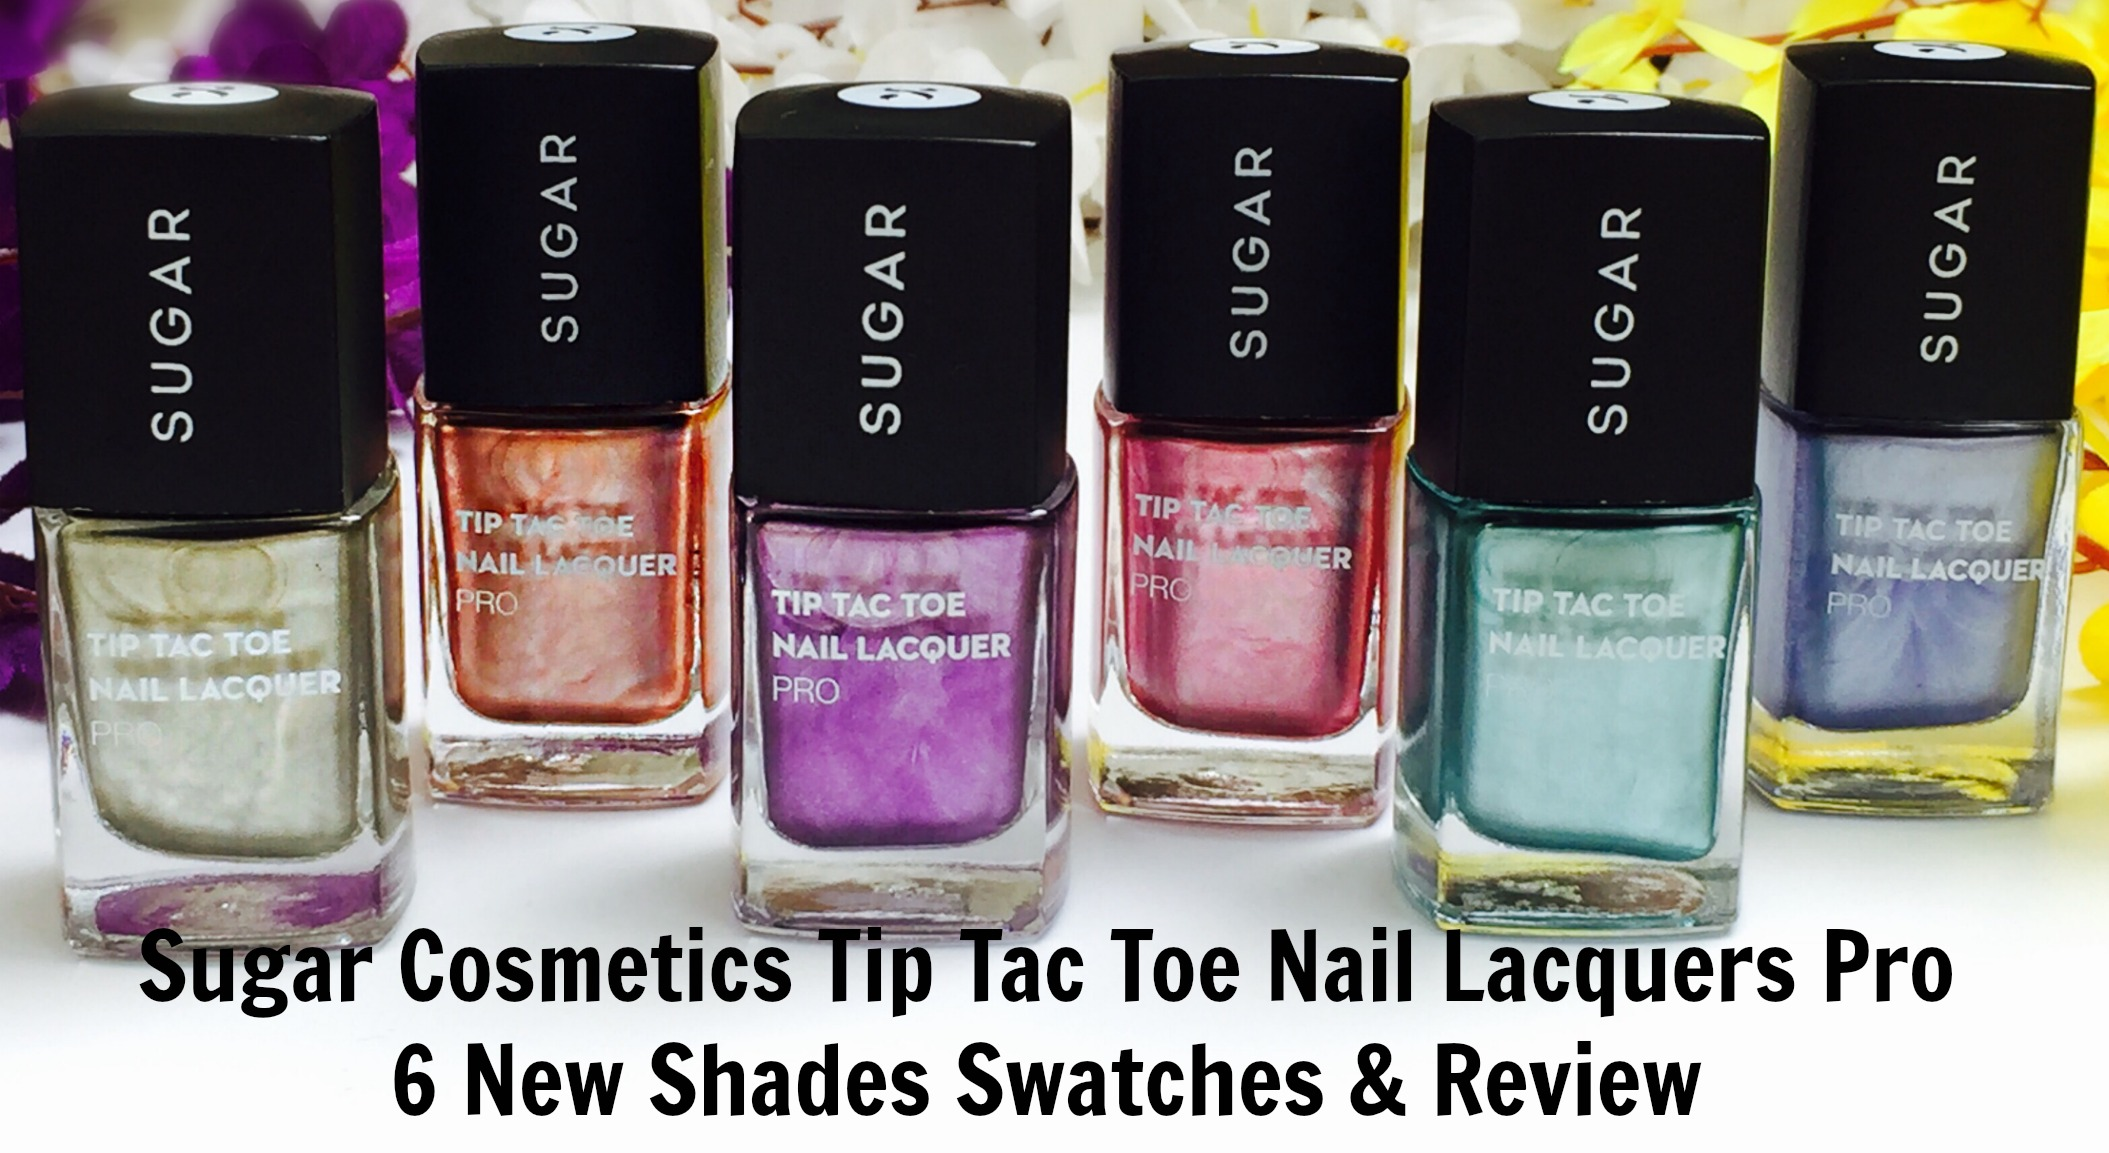 Sugar Cosmetics Tip Tac Toe Nail Lacquers Pro 6 New Shades Swatches ...